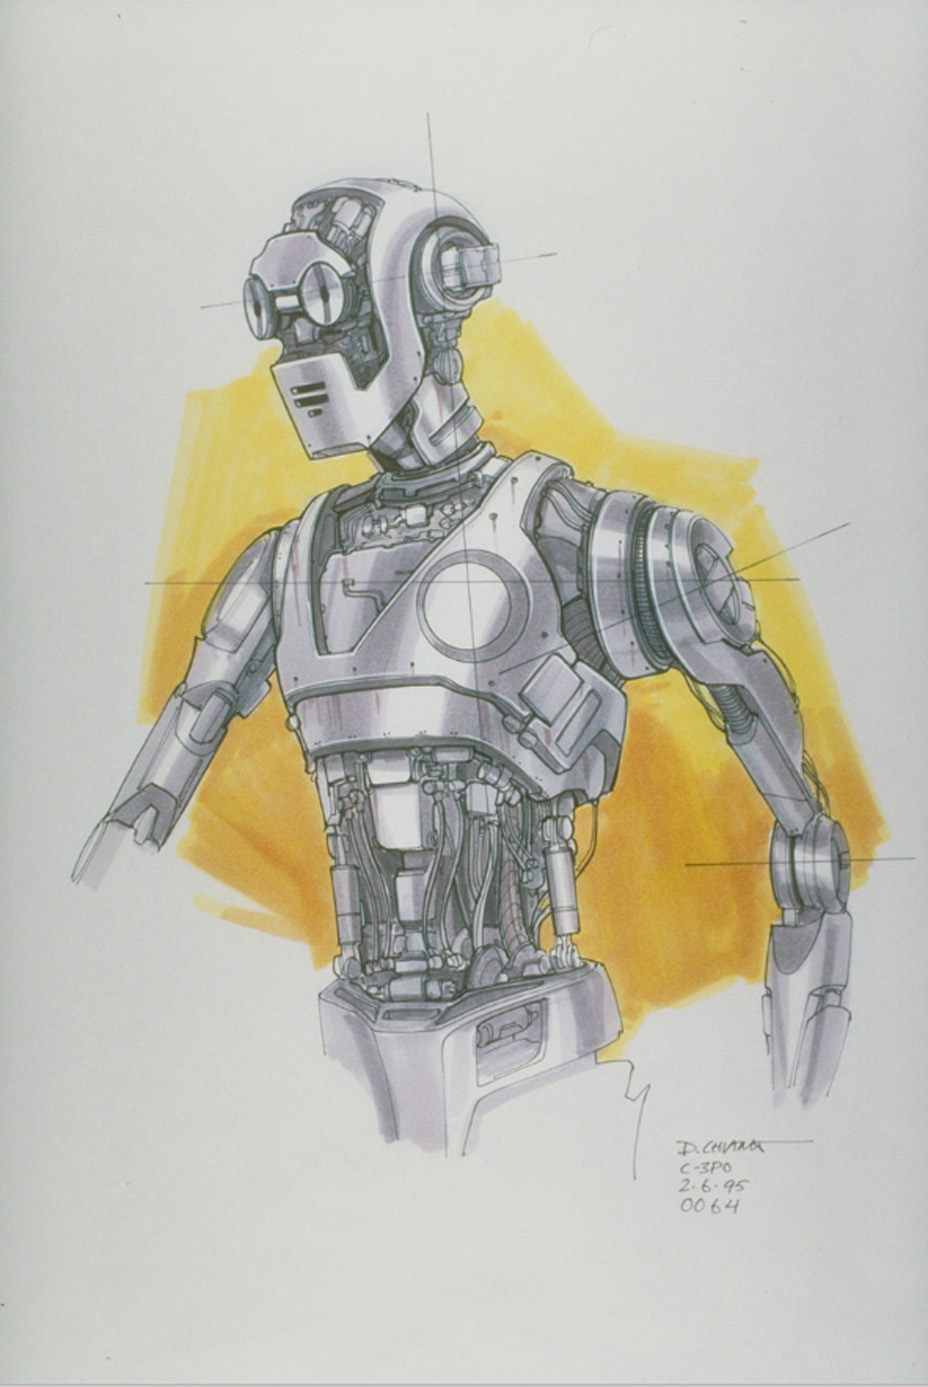 C-3PO concept art from The Phantom Menace by Doug Chiang.